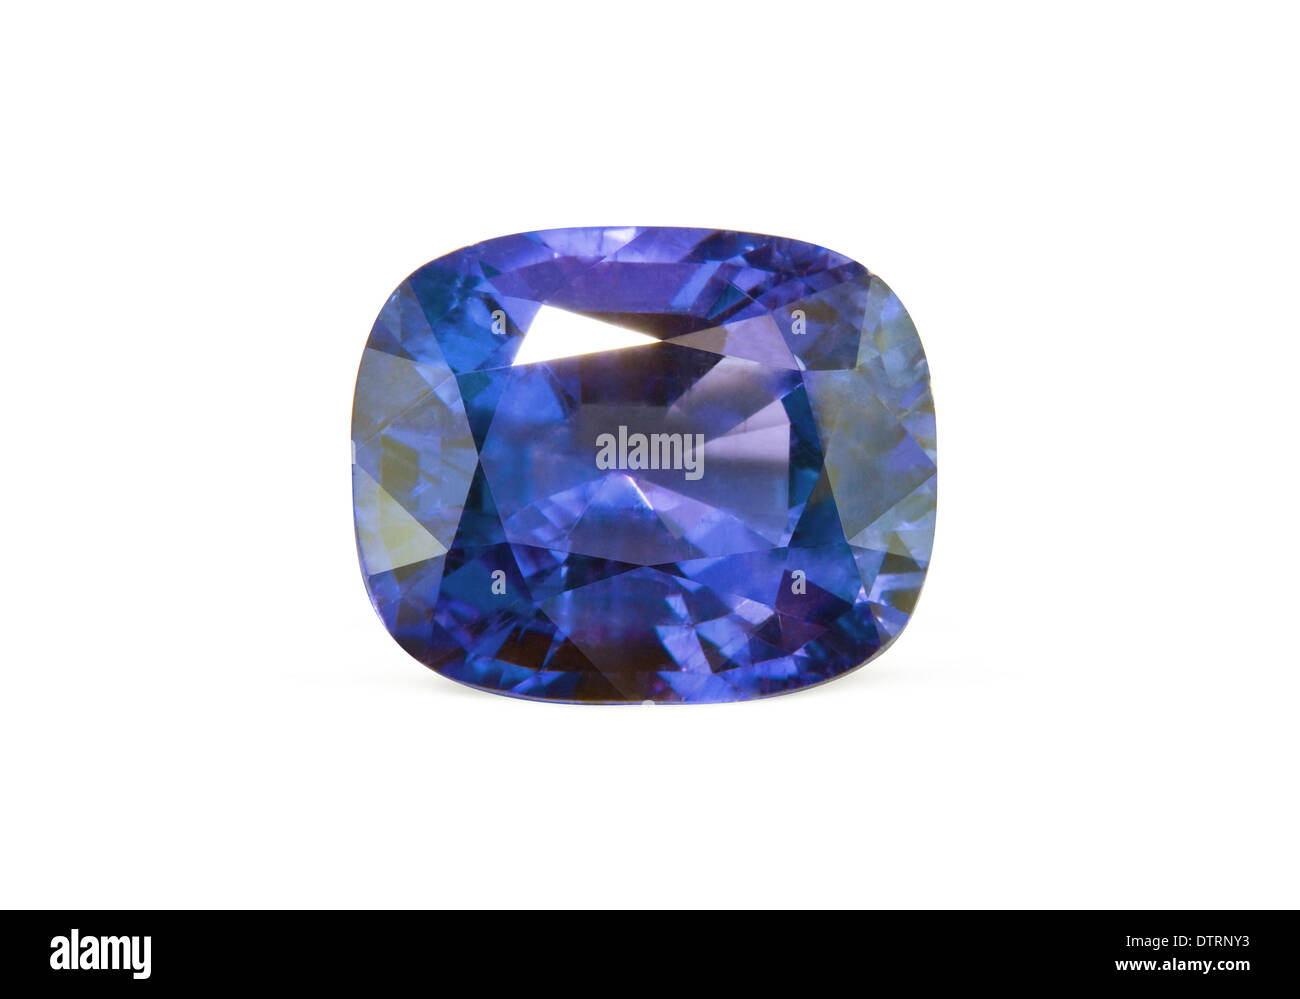 tanzanite scenario gems product bead